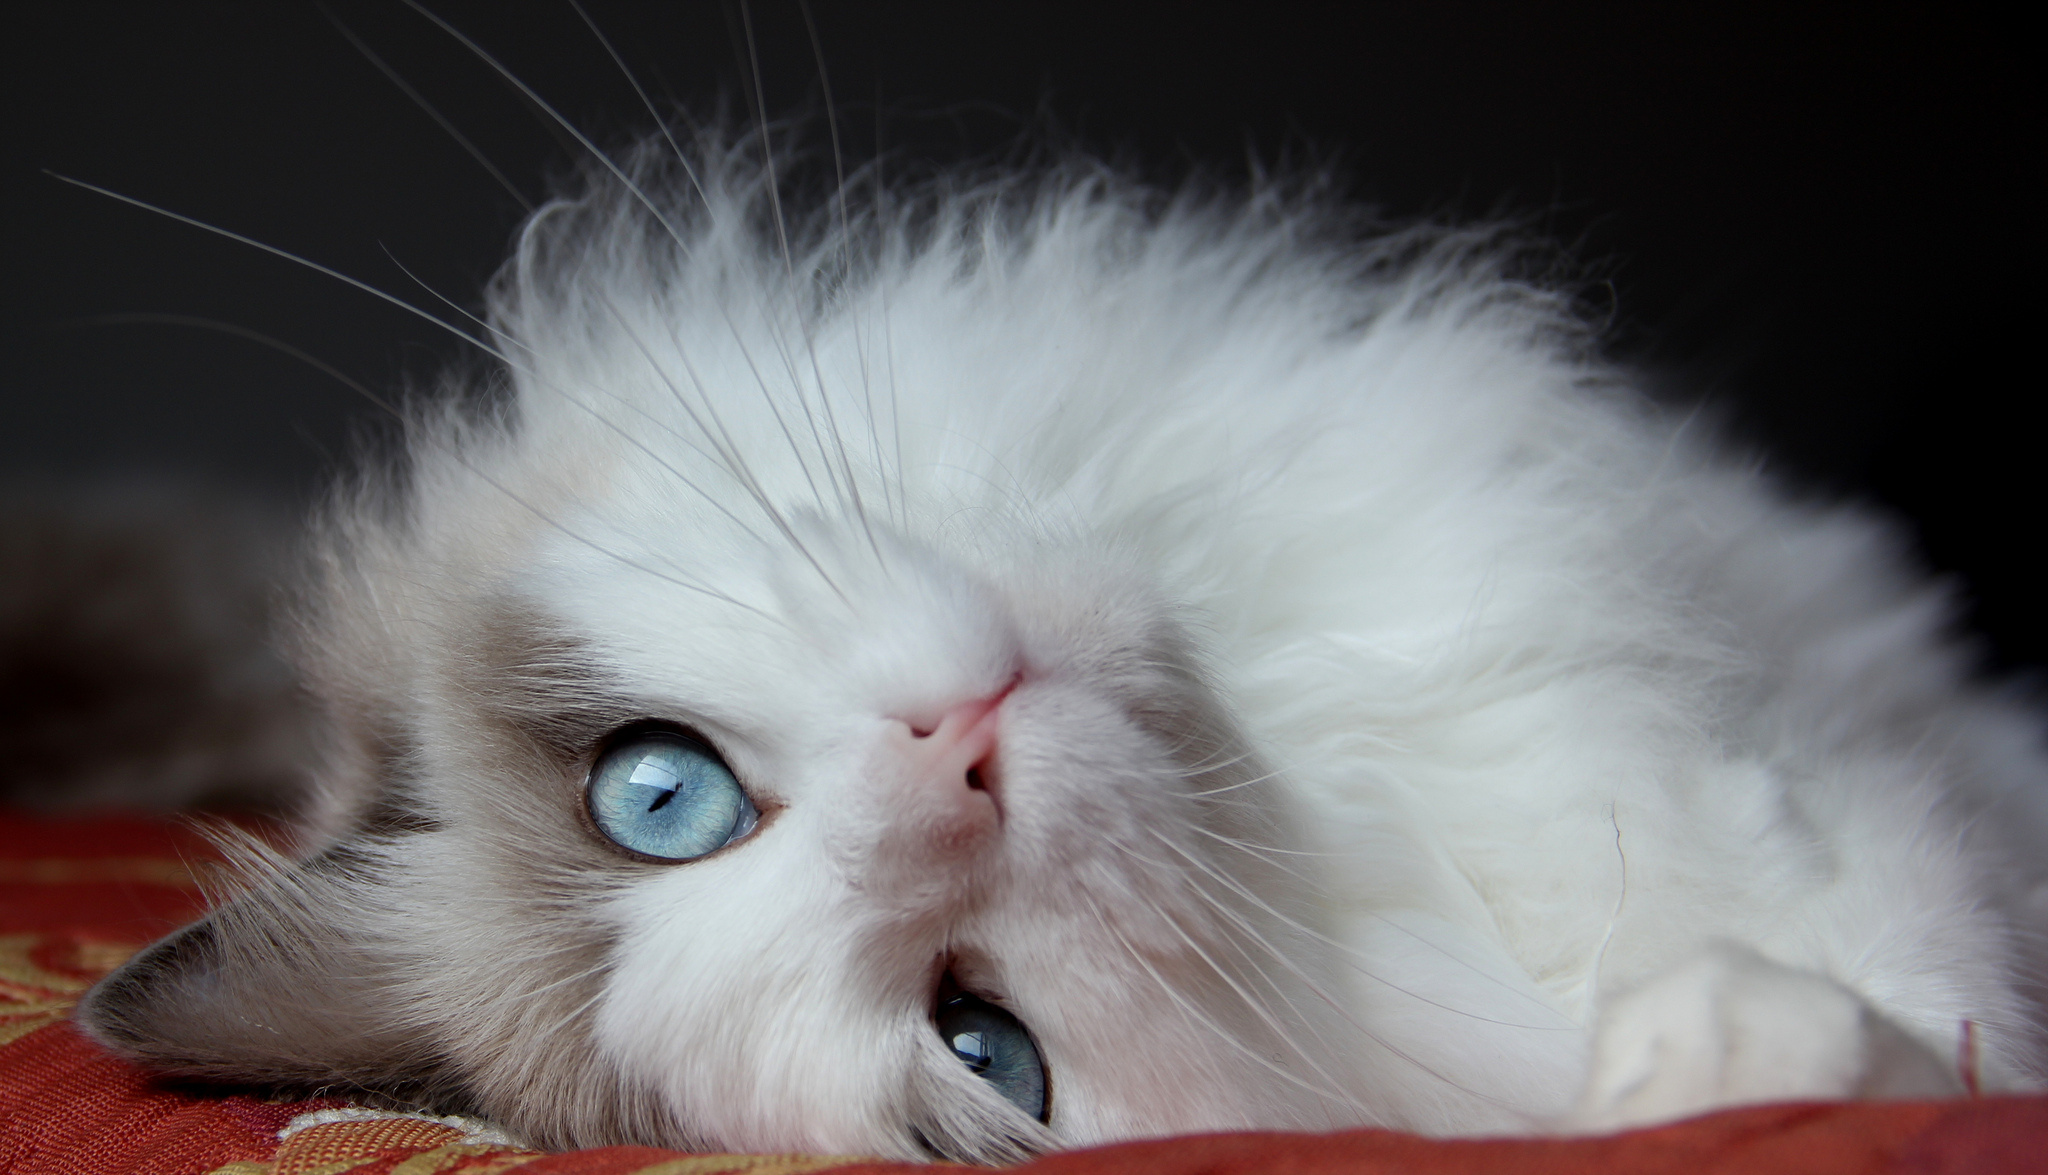 136063 download wallpaper Animals, Fluffy Cat, Cat, Lies, Eyes, Beautiful Cat screensavers and pictures for free